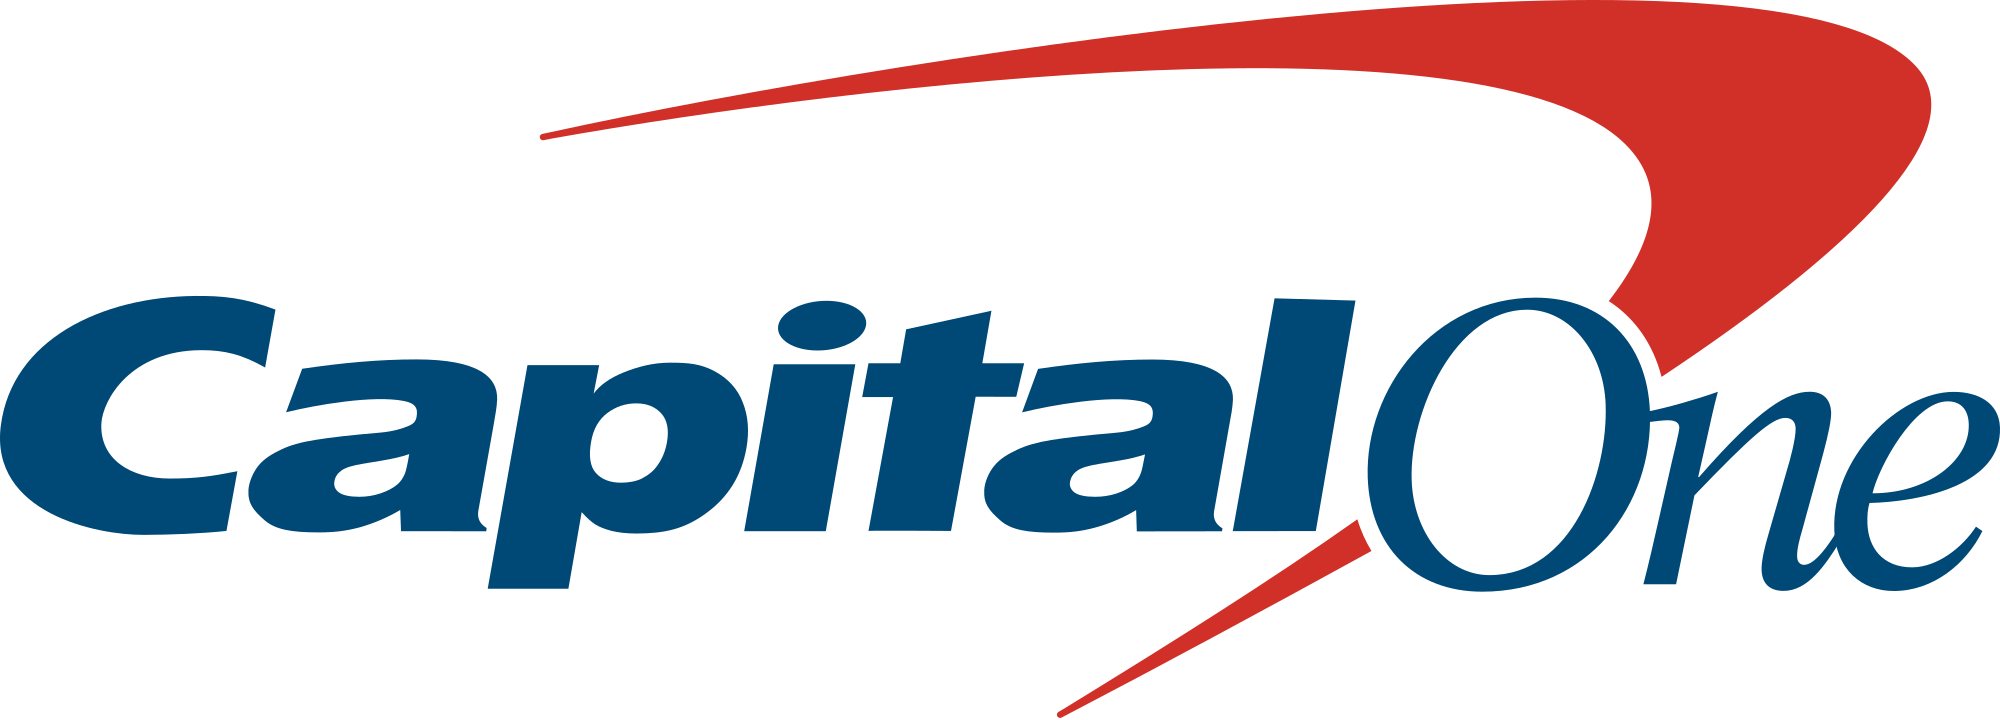 Senior Software Engineer role from Capital One in Mclean, VA